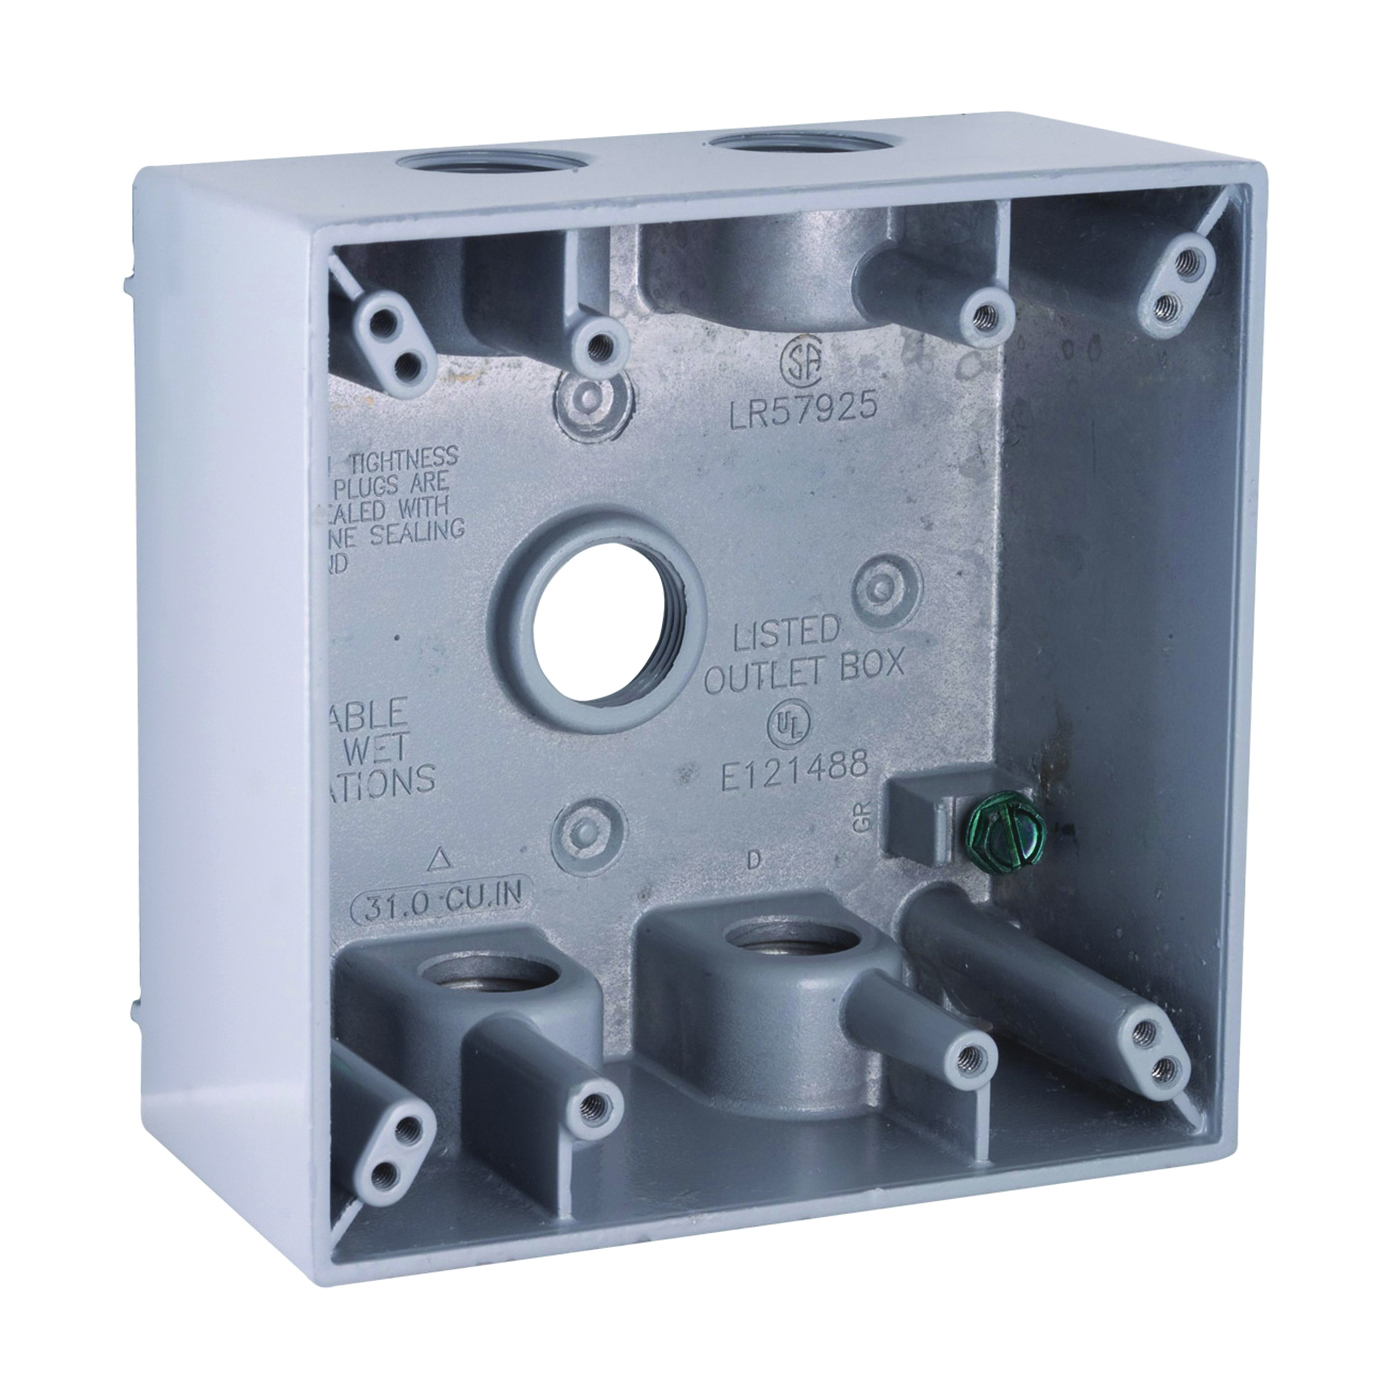 Picture of HUBBELL 5337-5 Box, 5-Outlet, 2-Gang, Aluminum, Gray, Powder-Coated